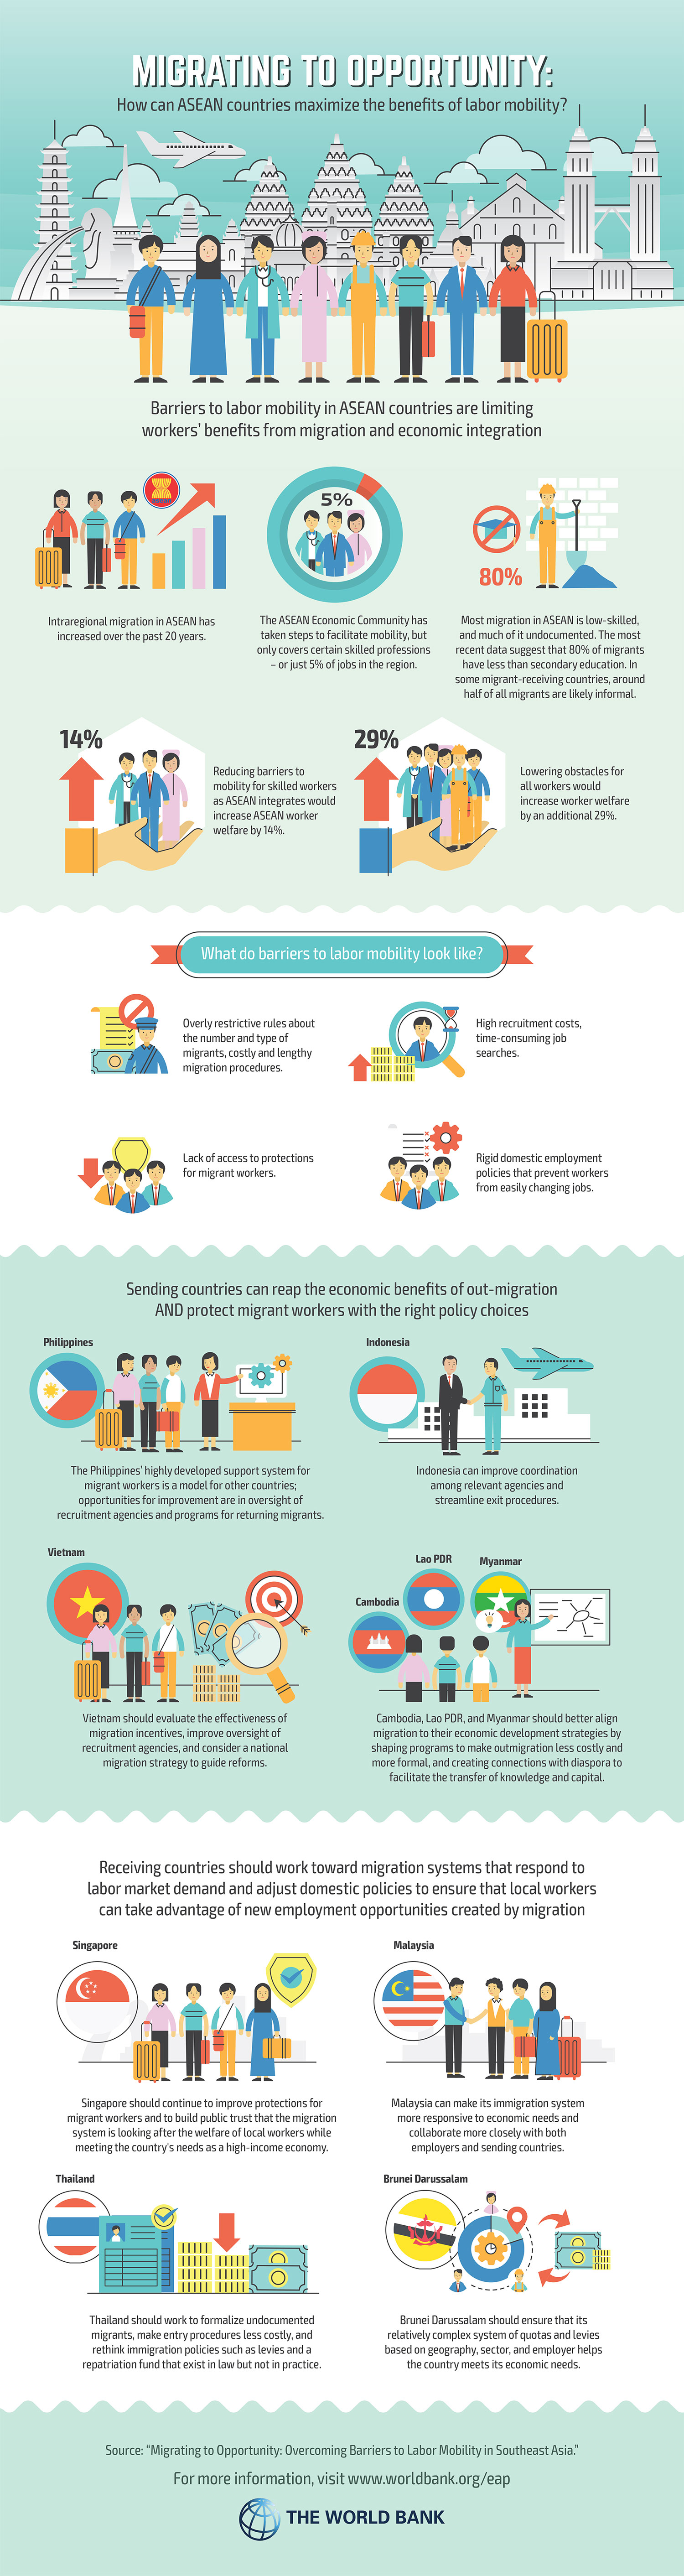 ASEAN-Labor-Mobility-Report-Infographic - Good News Pilipinas